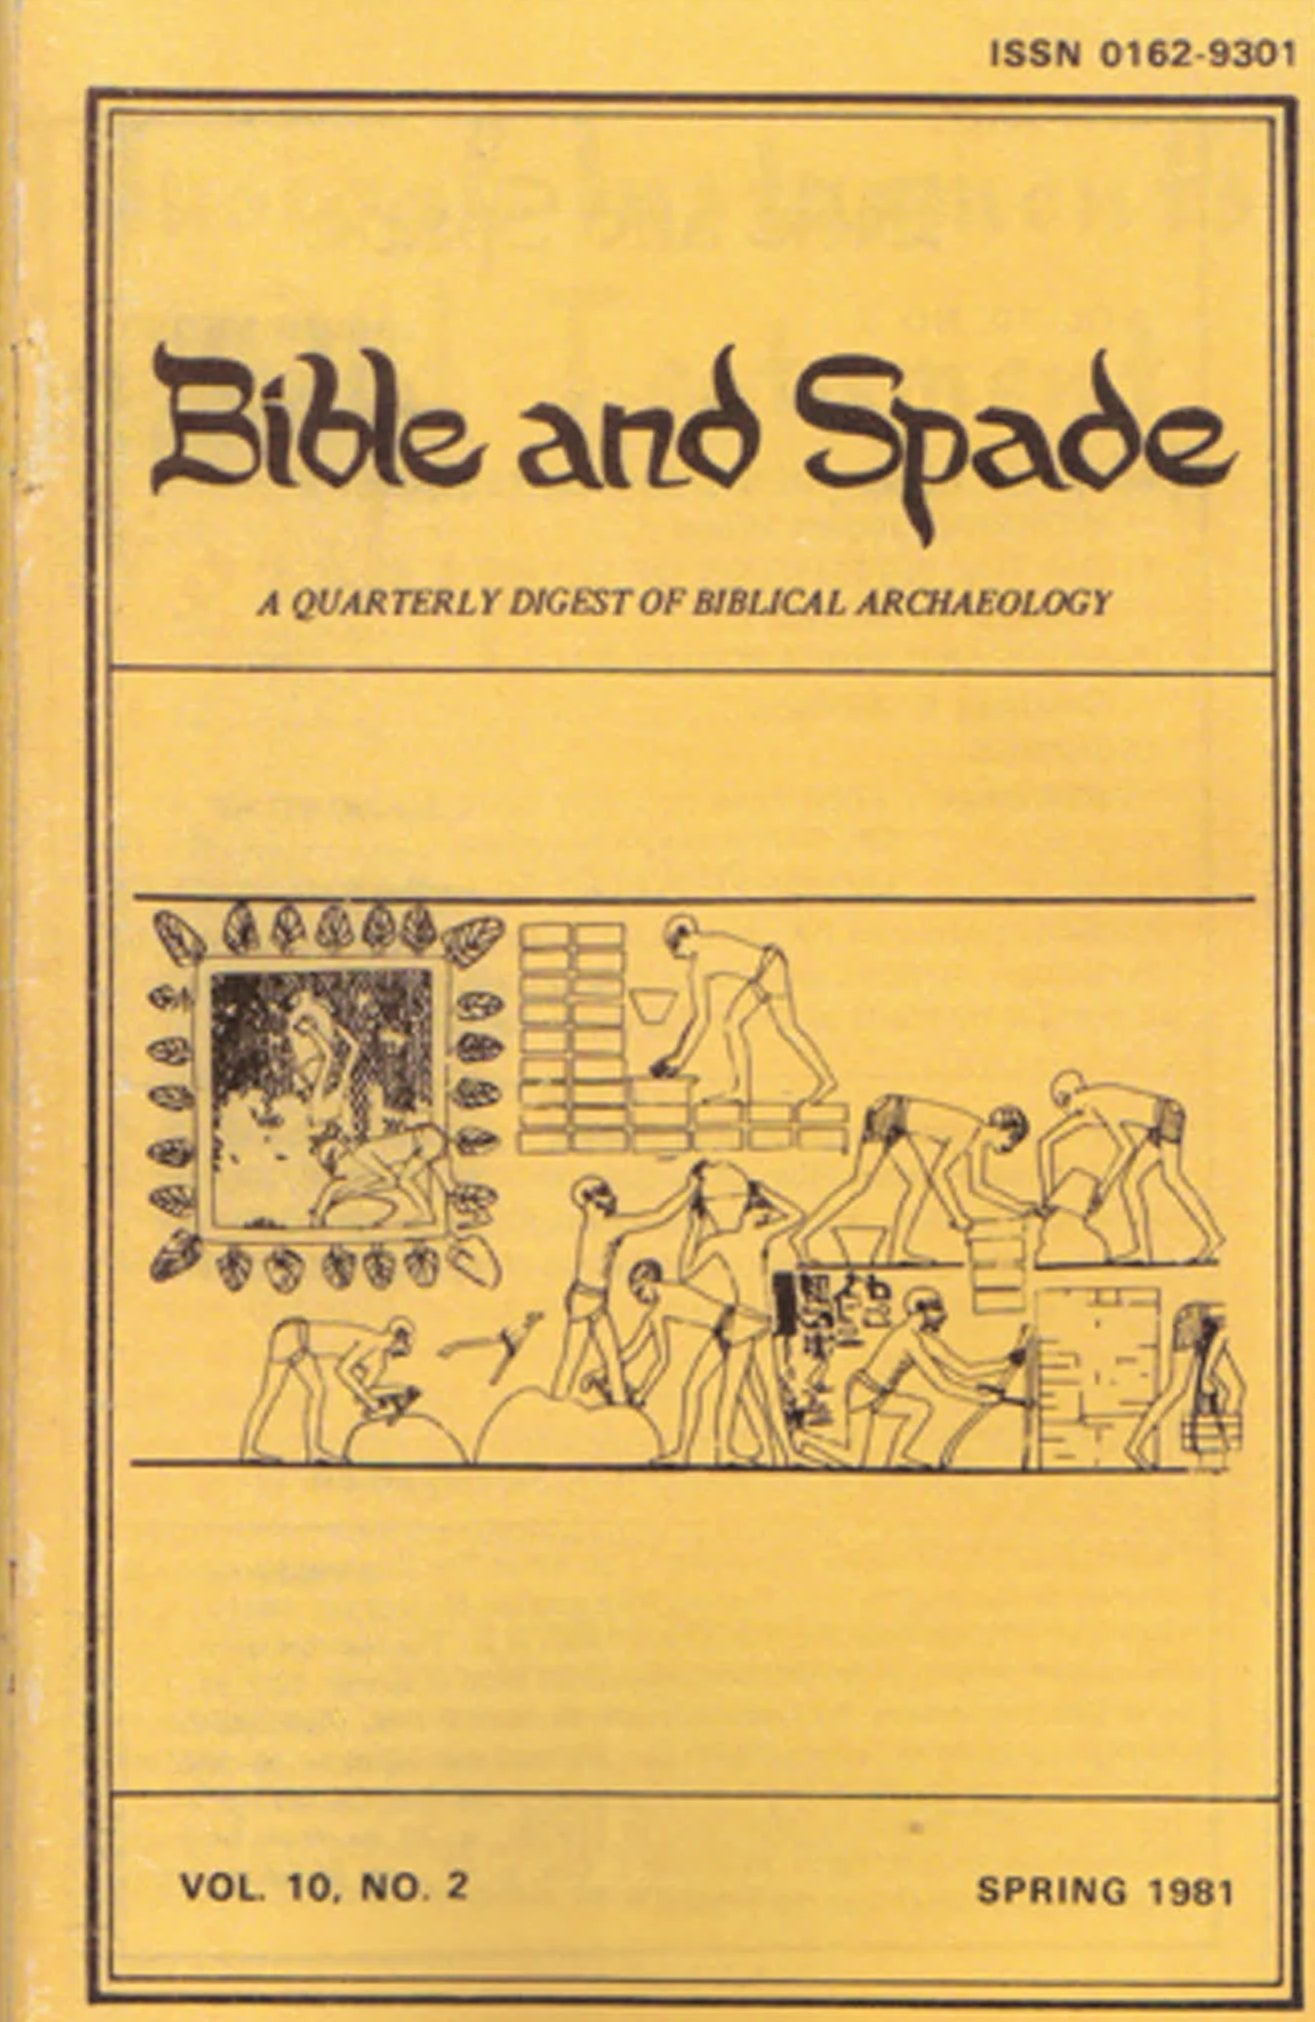 Issues of BIBLE and SPADE produced in 1981